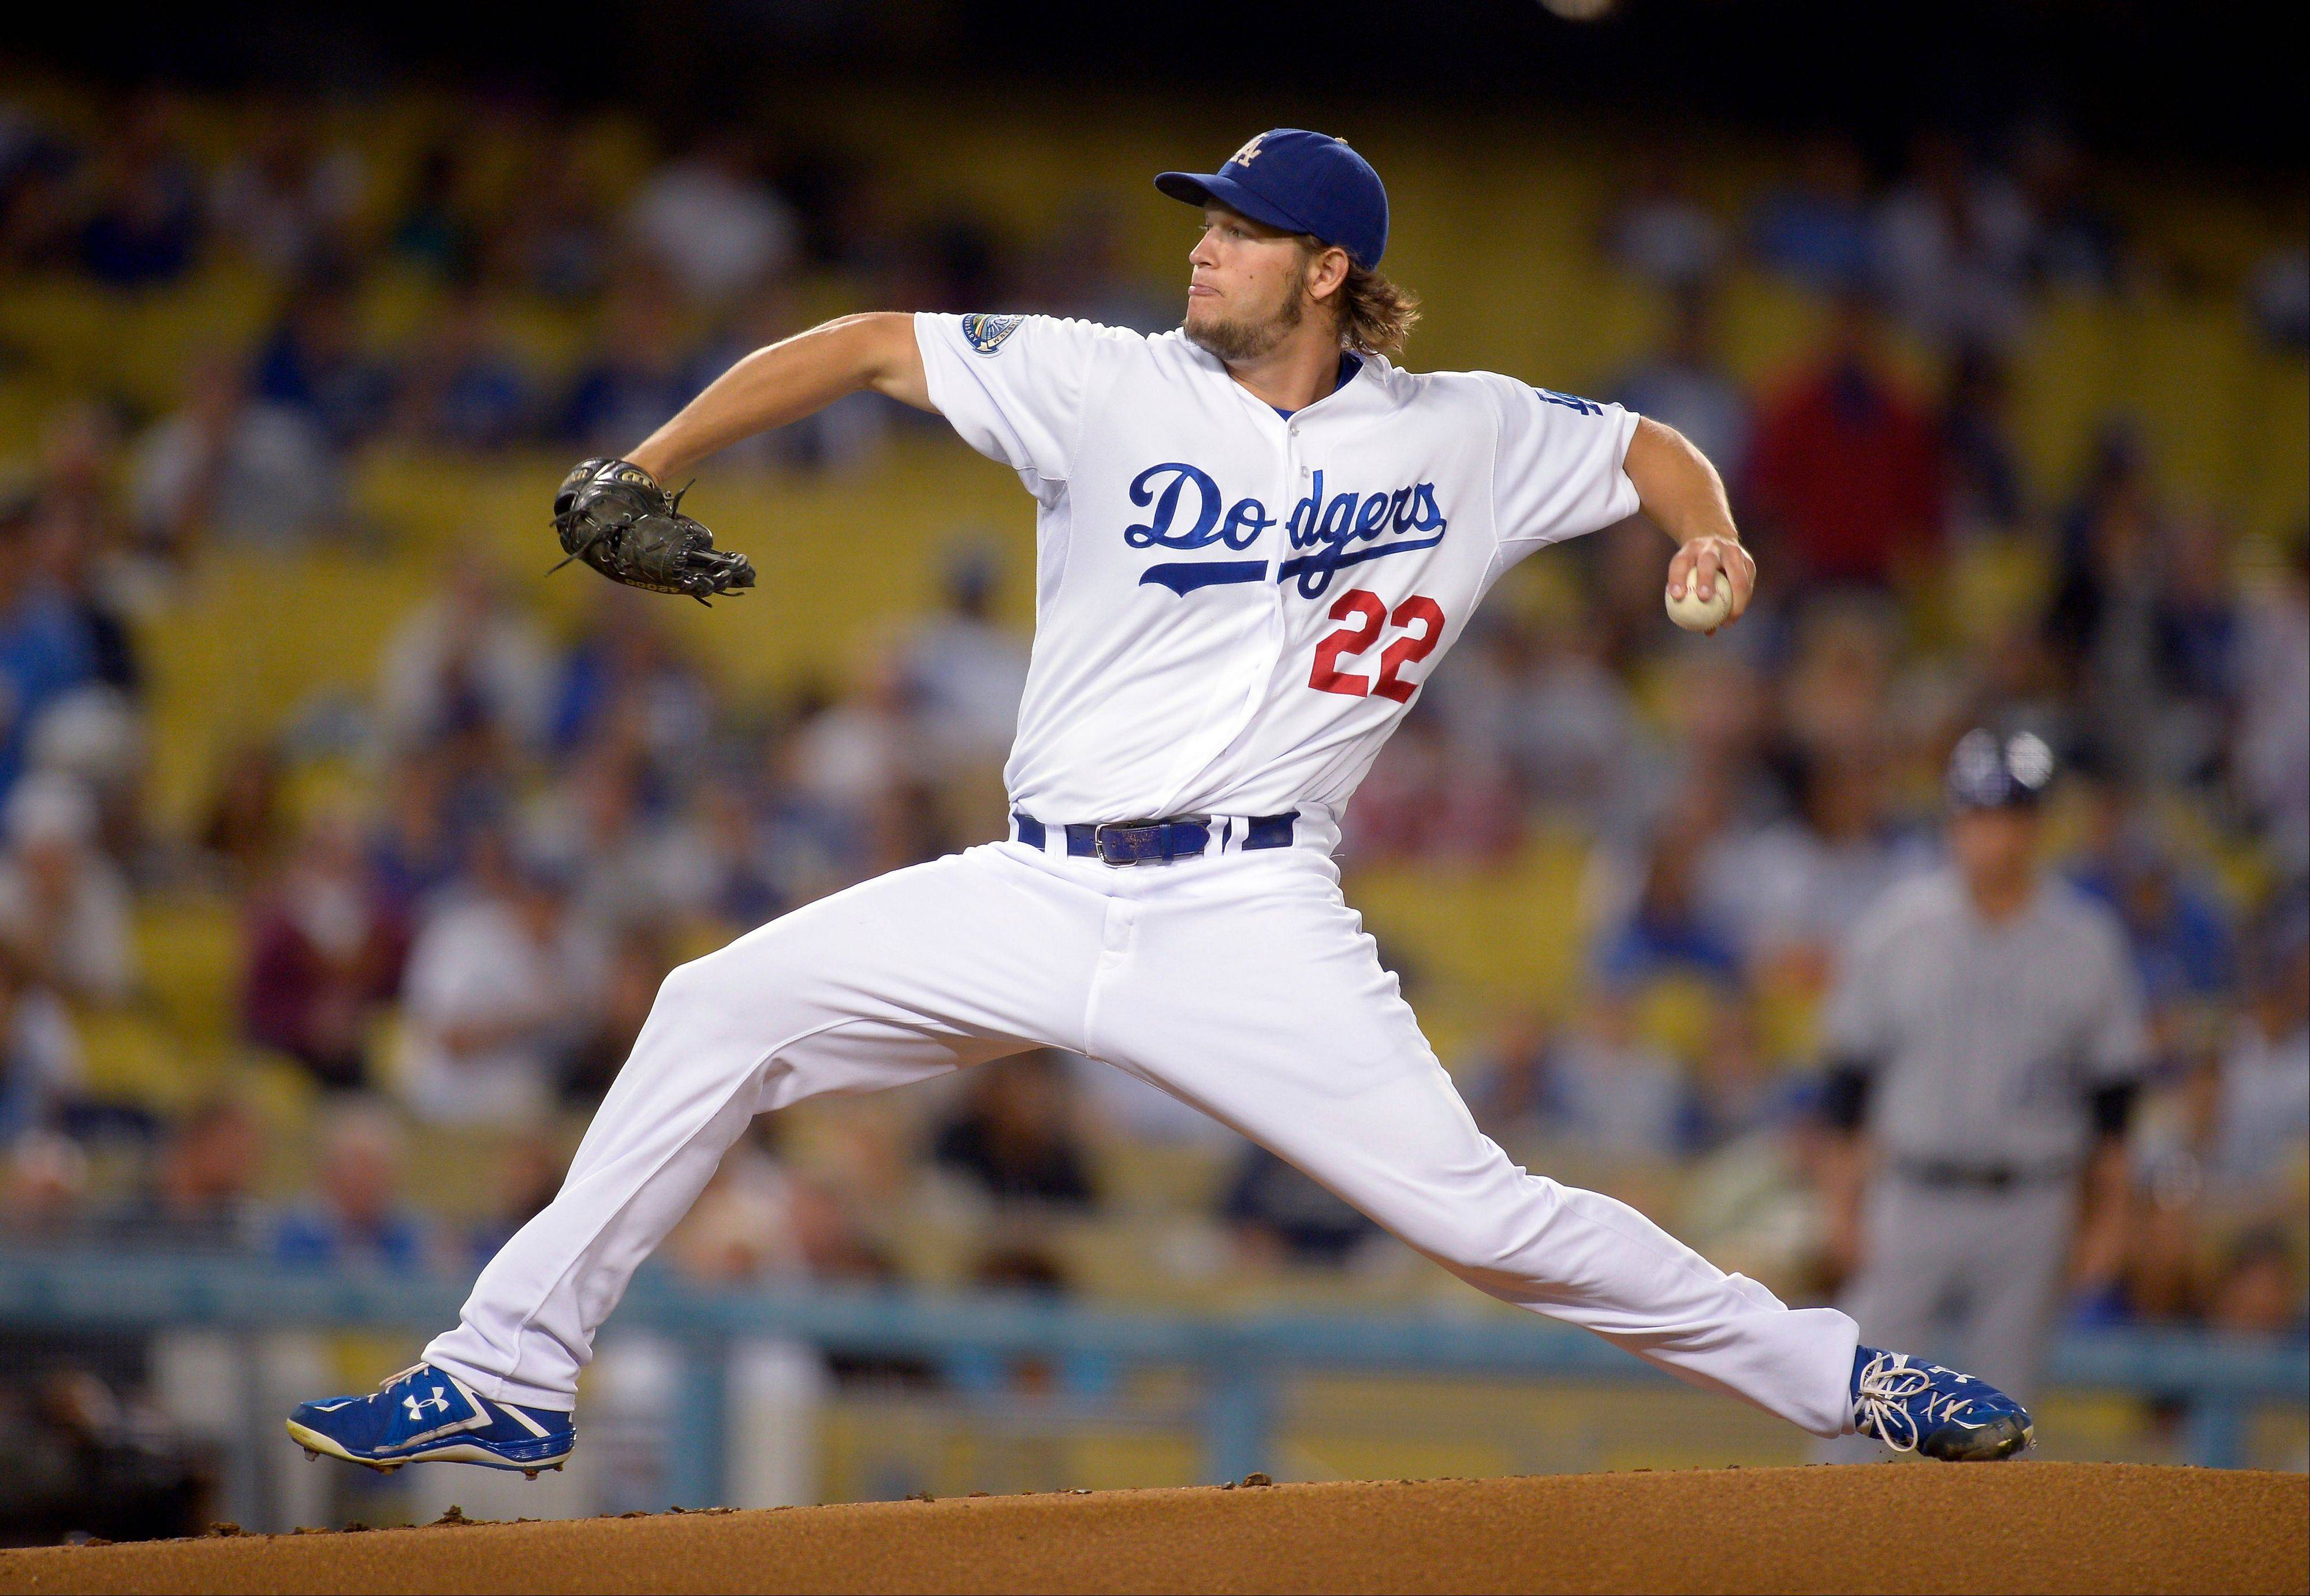 Los Angeles Dodgers starting pitcher Clayton Kershaw fanned at least 10 for the 18th time in his career Friday at home against Colorado.